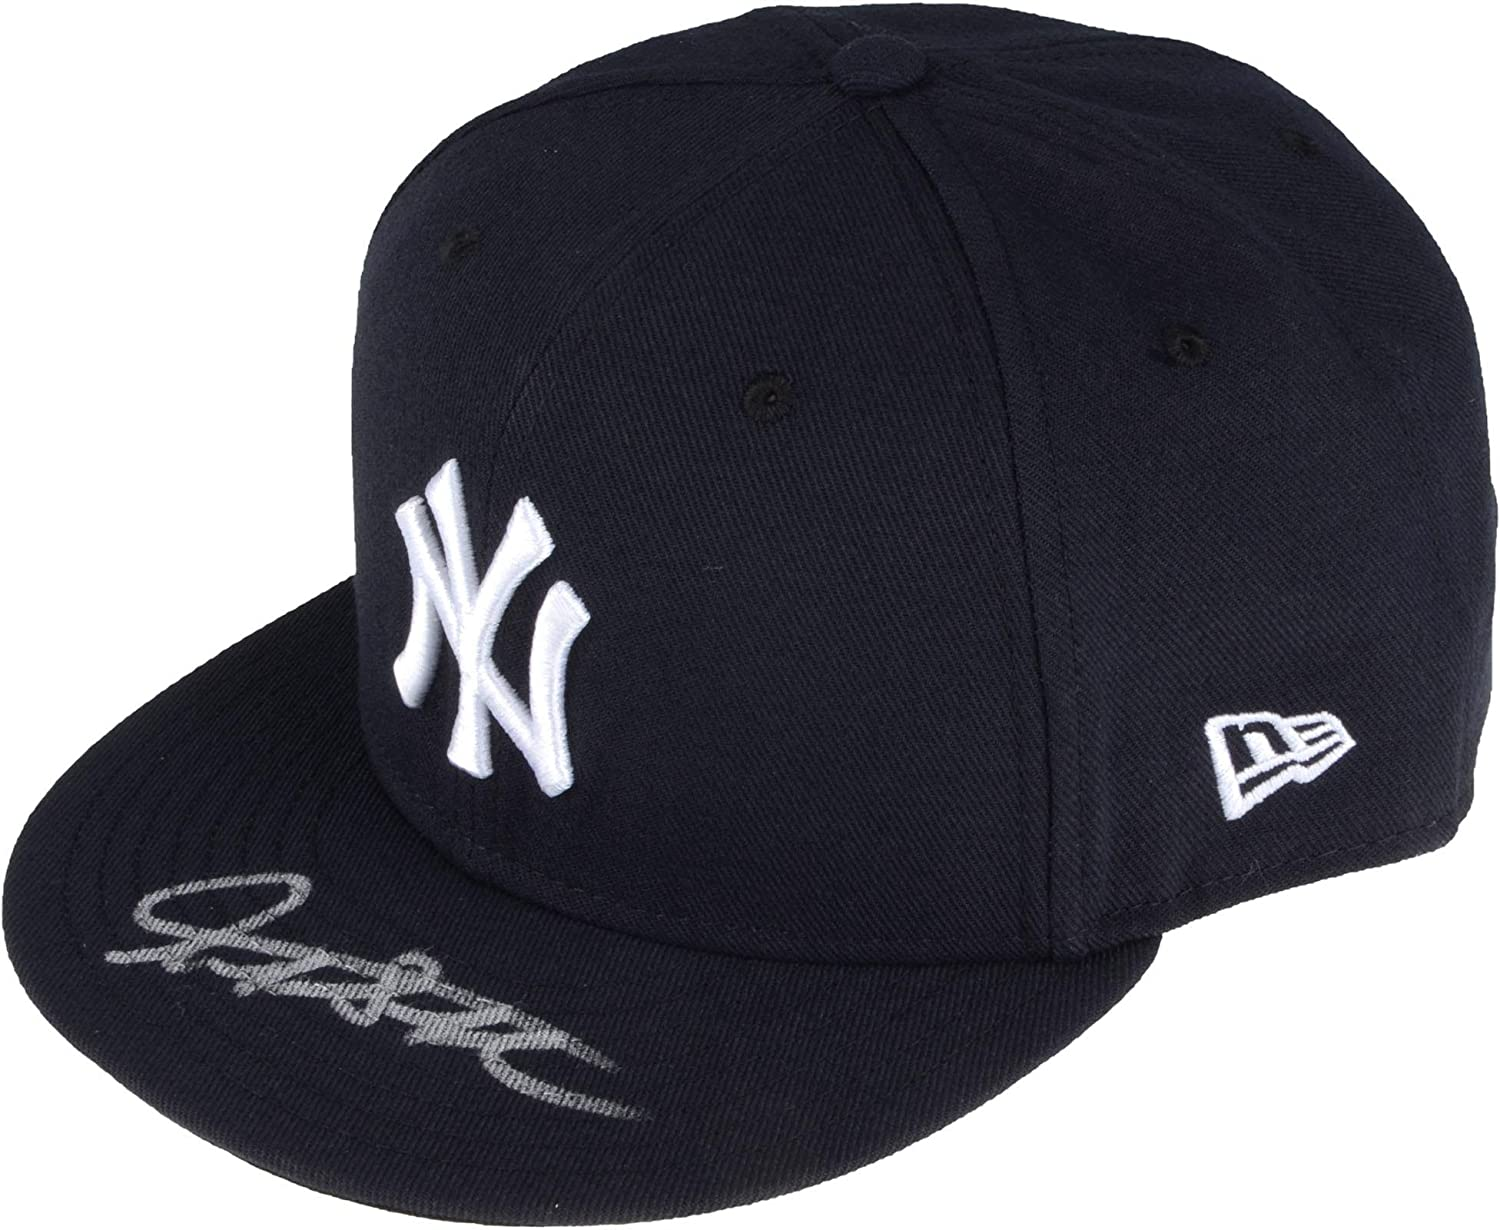 Giancarlo Stanton New York Yankees Autographed Cap - Fanatics Authentic  Certified - Autographed Hats at Amazon s Sports Collectibles Store 69675892af0b